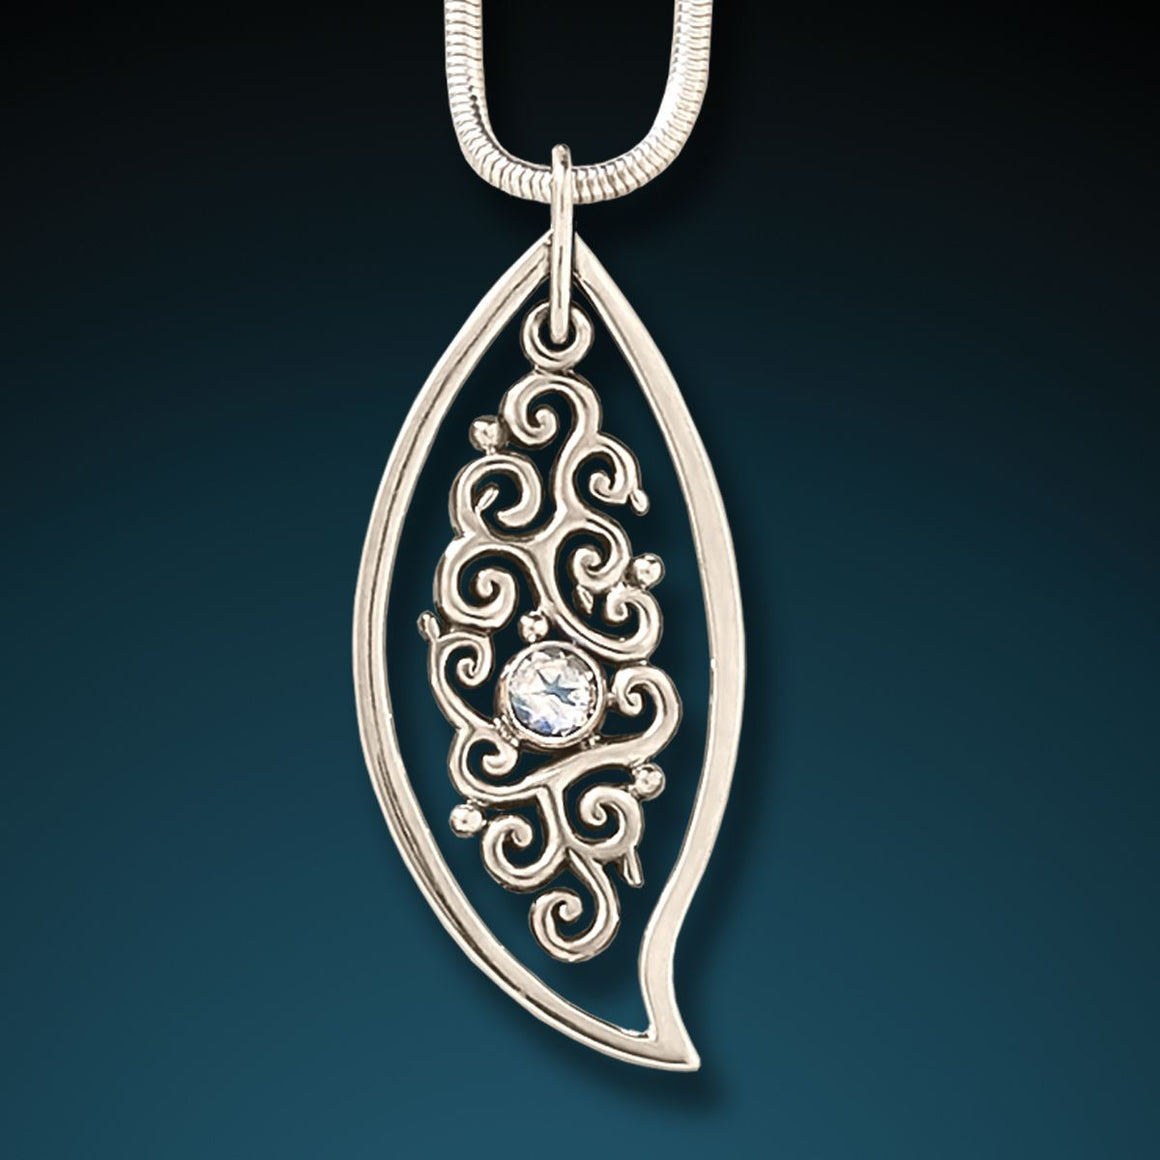 SILVER, RAINBOW MOONSTONE LEAF PENDANT - DANCING LEAF